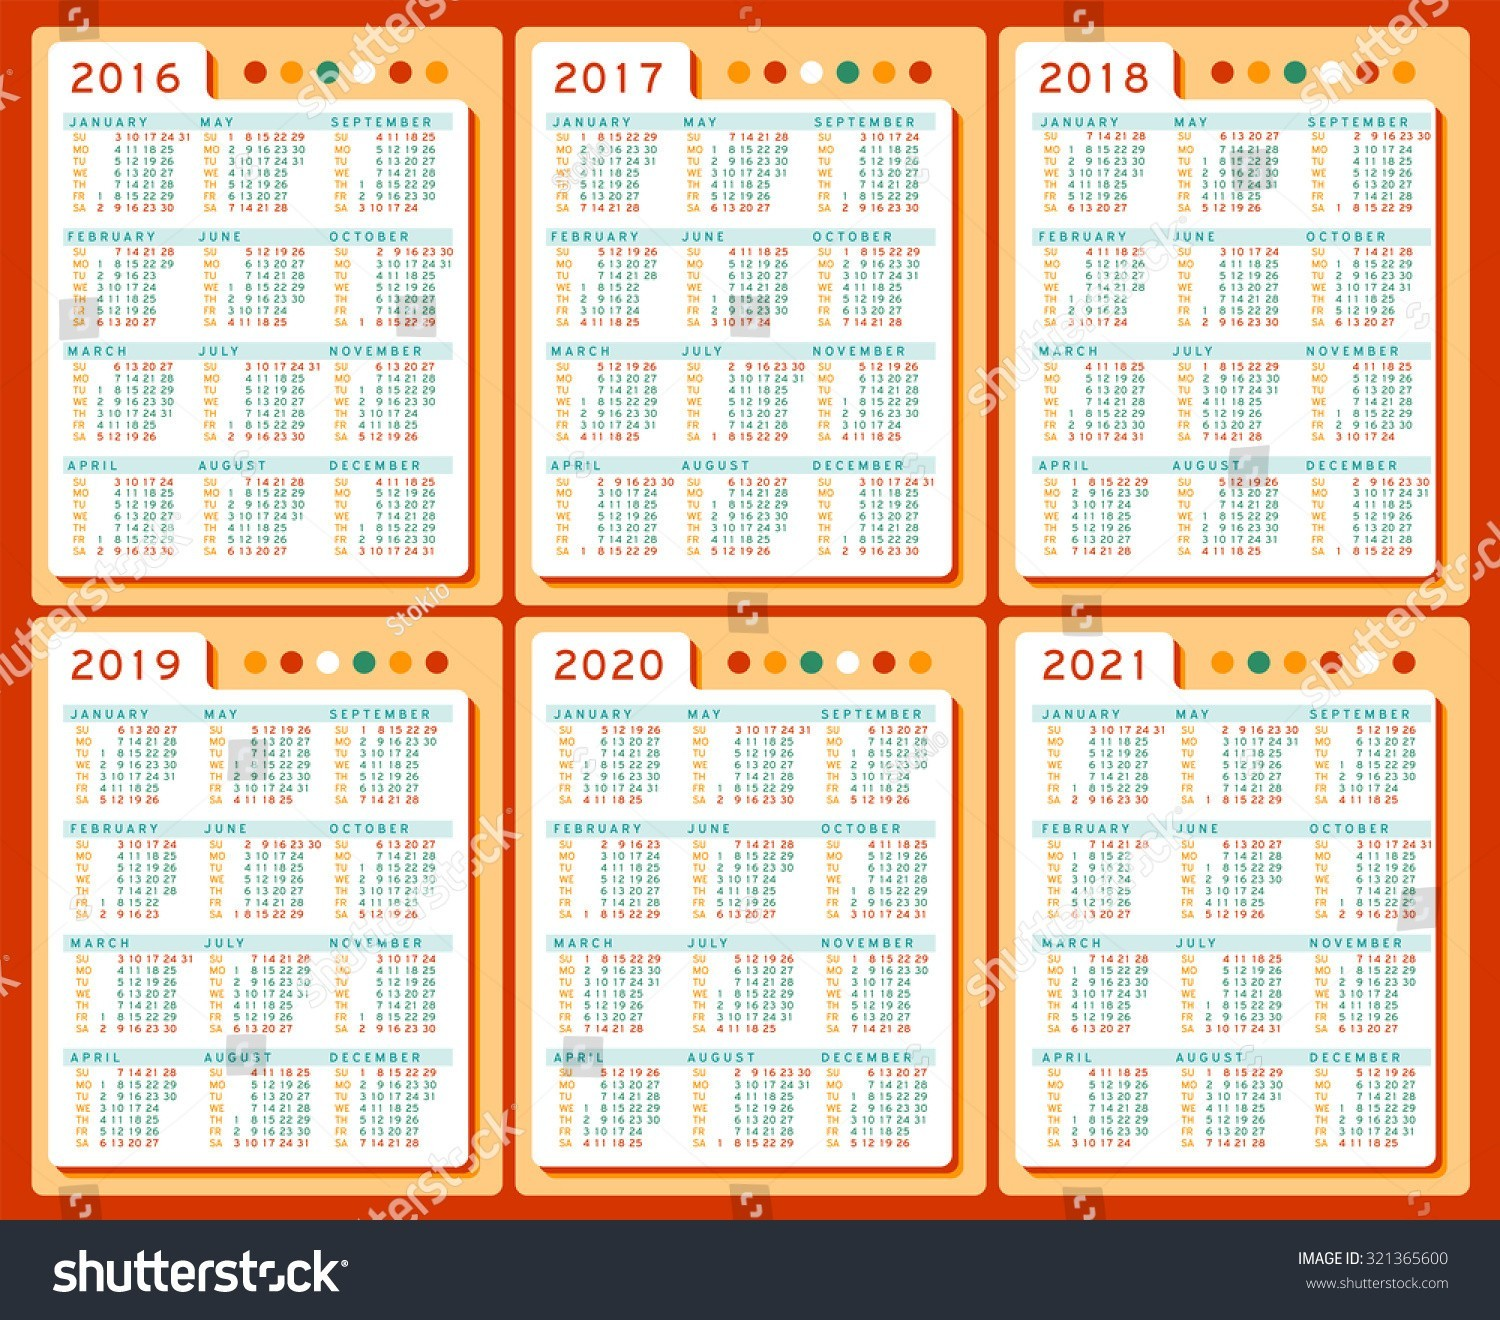 2019 Calendar Template Excel Singapore Actual 2019 and 2020 Calendar Printable Australia Of 2019 Calendar Template Excel Singapore Más Arriba-a-fecha 2018 Printable Calendar Template Excel Pdf Ms Word Doc Holidays Fair